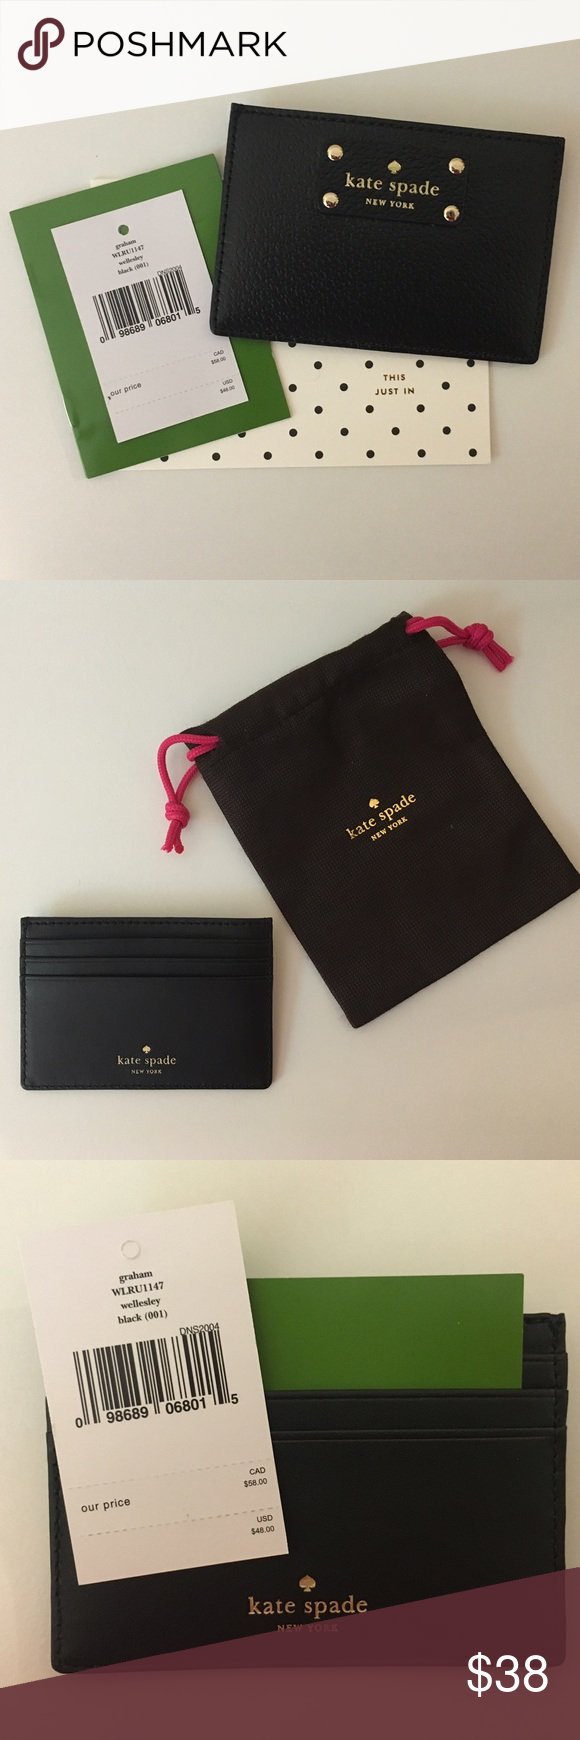 Kate Spade Card Holder - Black Perfect for the woman on the go - Happy Shopping! kate spade Accessories Key & Card Holders